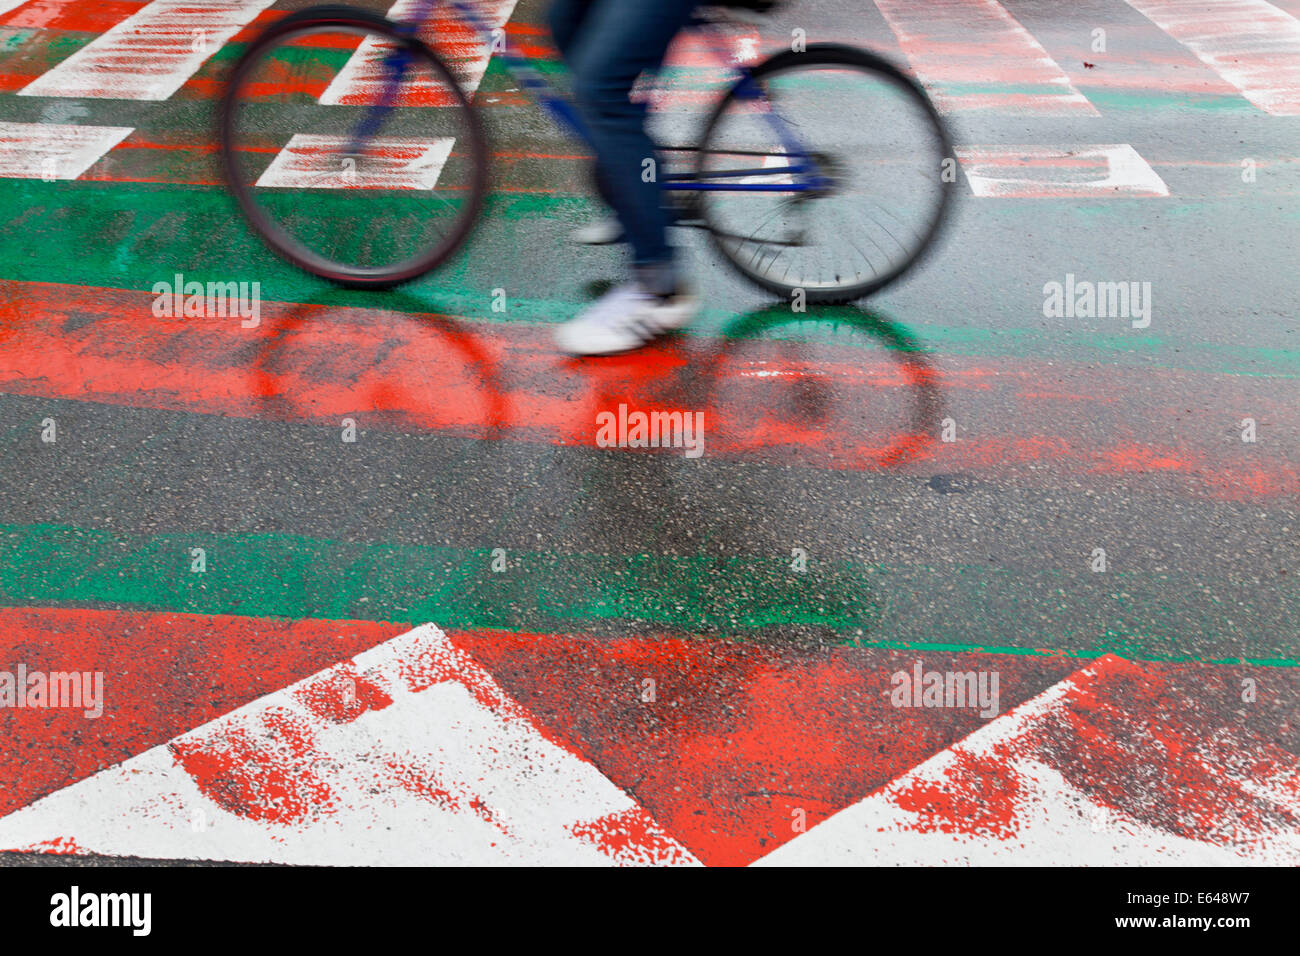 Pedestrian crossing & cycle path, Spain - Stock Image